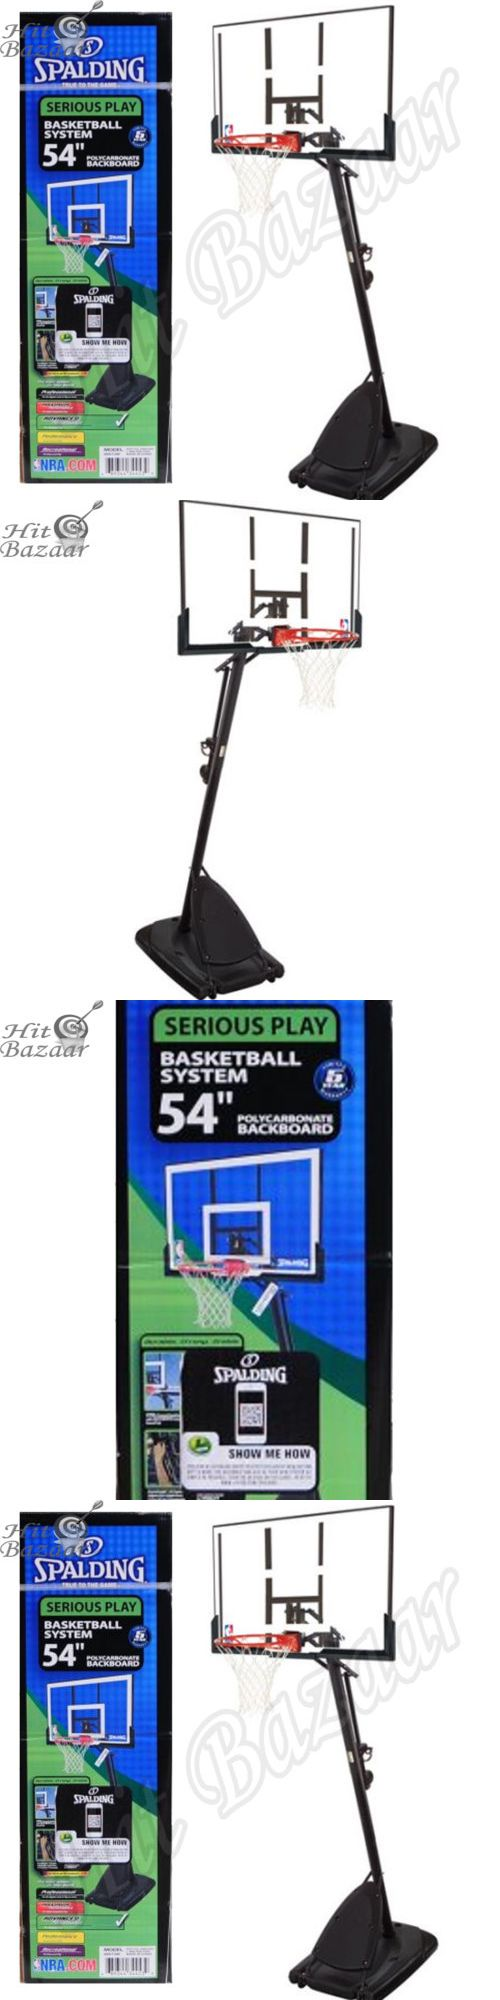 Backboard Systems 21196: Portable Basketball System Adjustable Hoop Backboard Outdoor Indoor Net Pole -> BUY IT NOW ONLY: $488 on eBay!